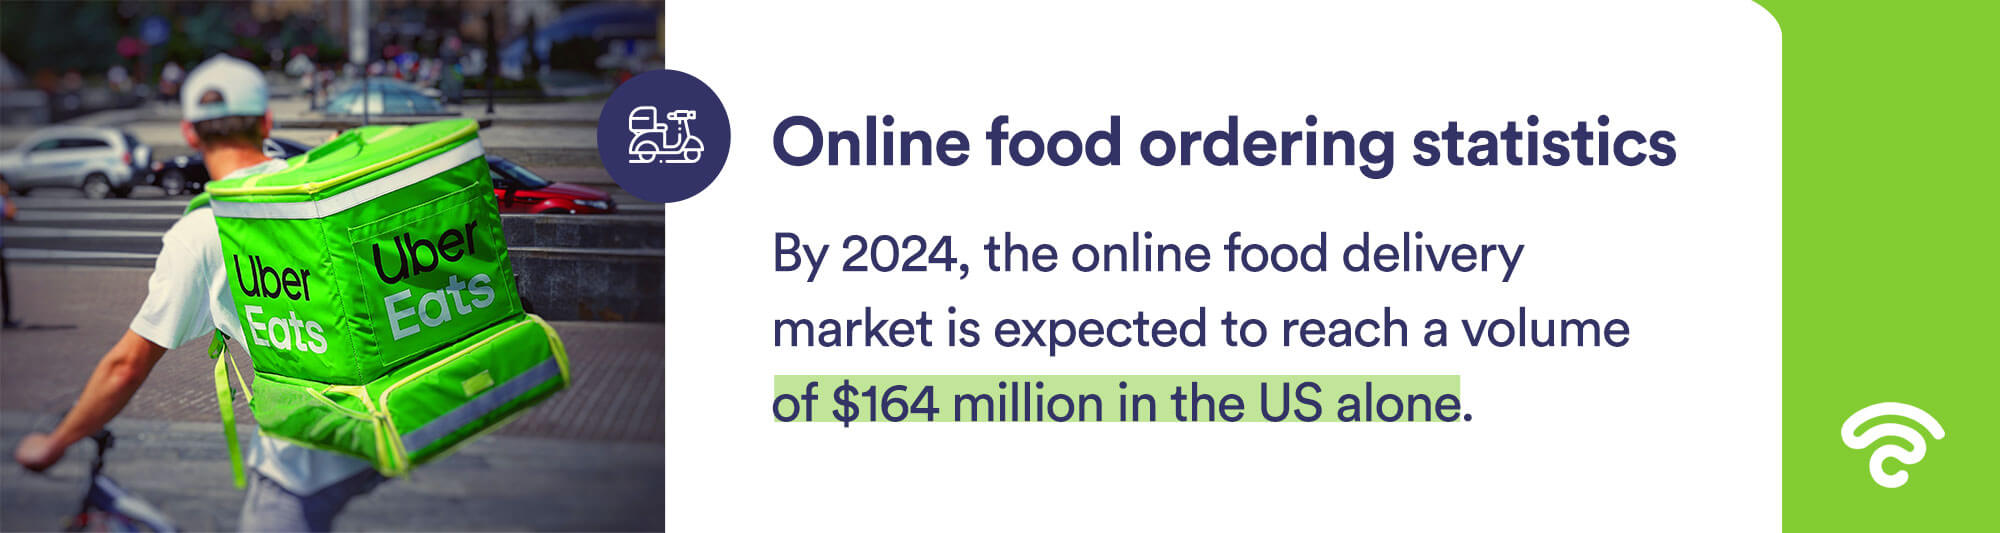 online food ordering stats